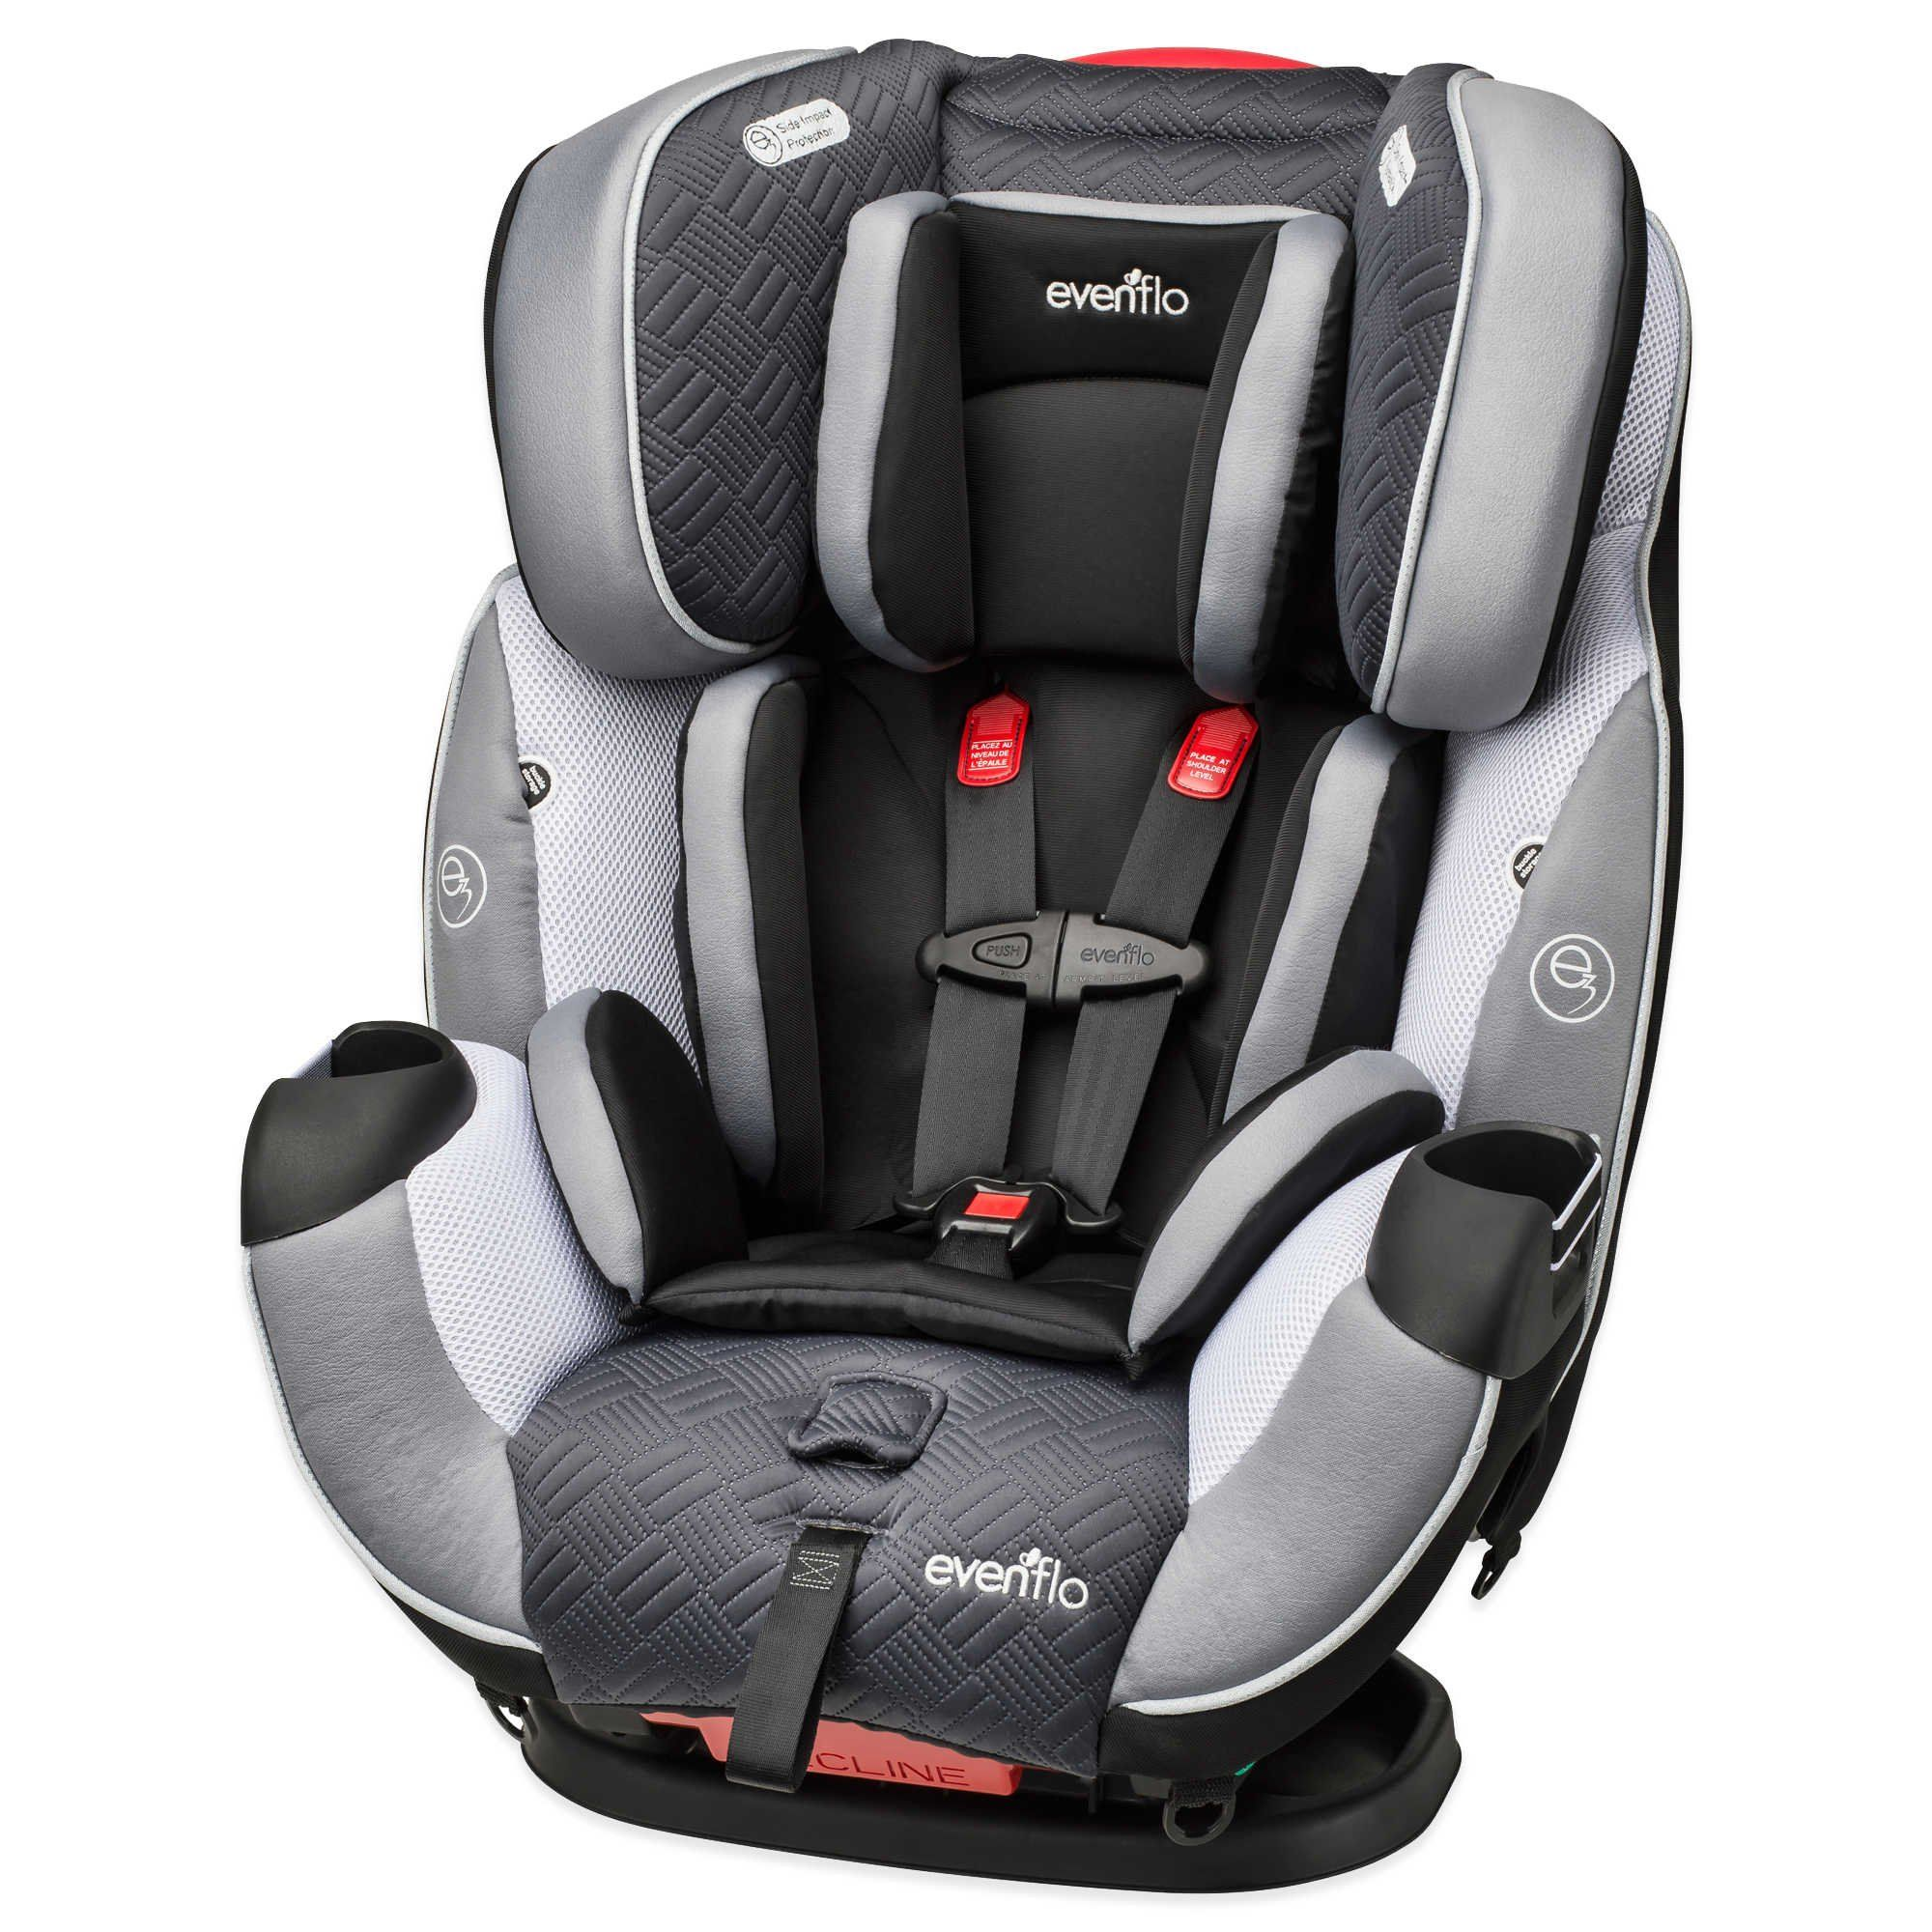 Evenflo Symphony DLX Concord 3in1 Car Seat. Evenflo